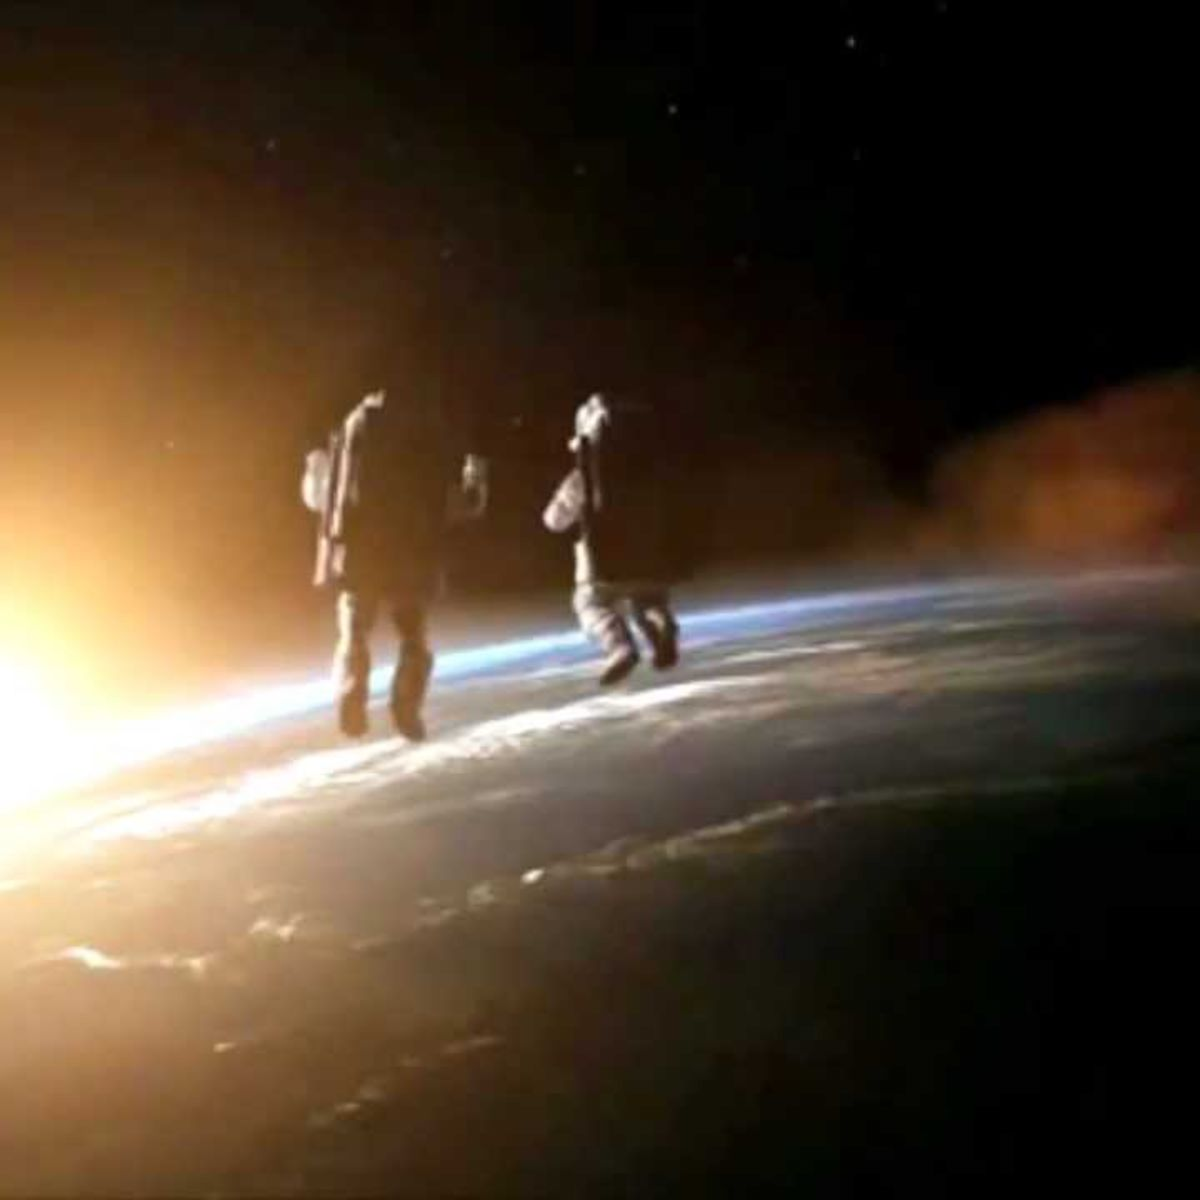 Advertisement: Discovery Channel - astronauts in space, earth